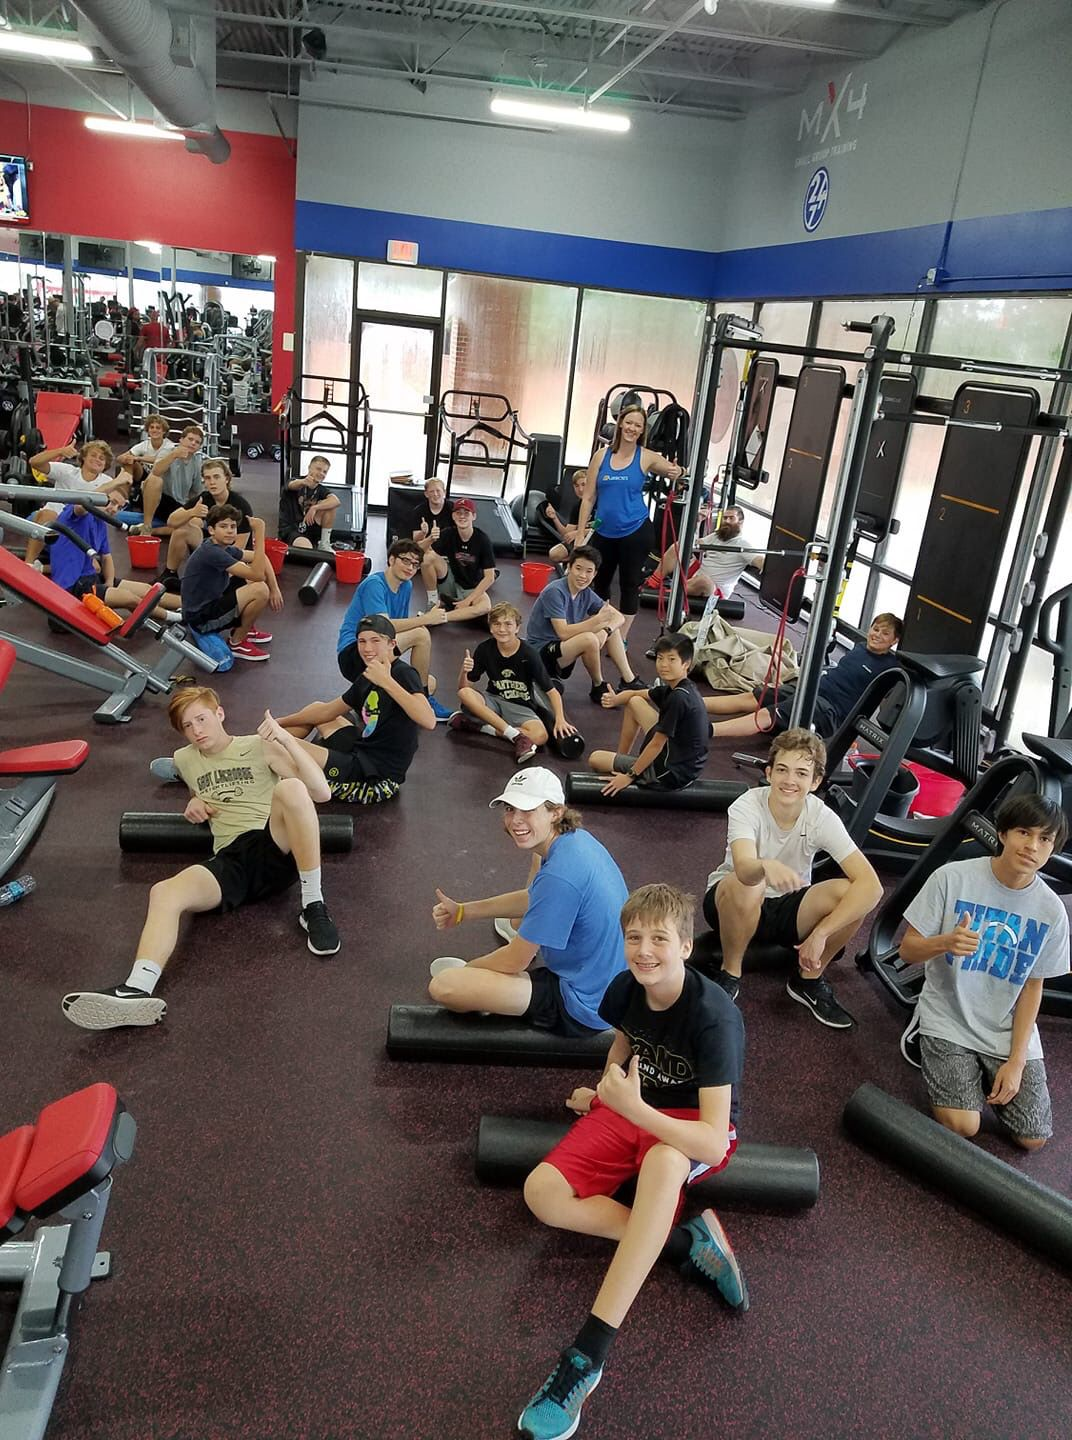 Mx4 Small Group Training Small Group Training Anytime Fitness Gym Workouts